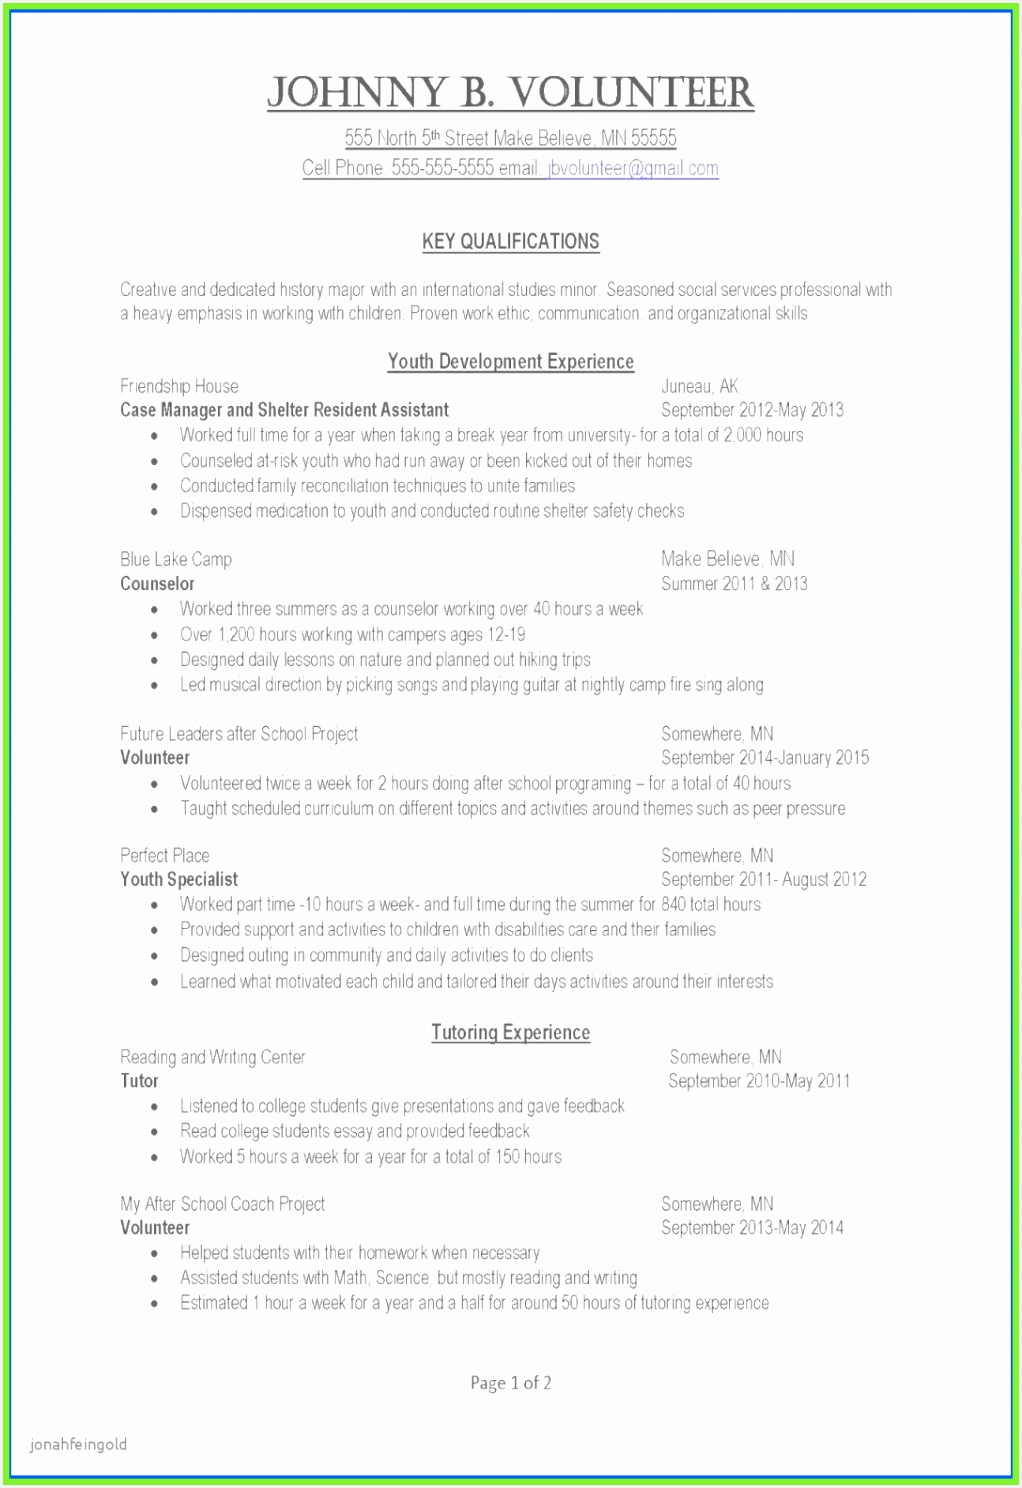 International social Worker Sample Resume Bnede Beautiful 16 Inspirational Student Cover Letter Template Of International social Worker Sample Resume Ctsud Lovely Work From Home Resume New Resume Beautiful social Worker Resume